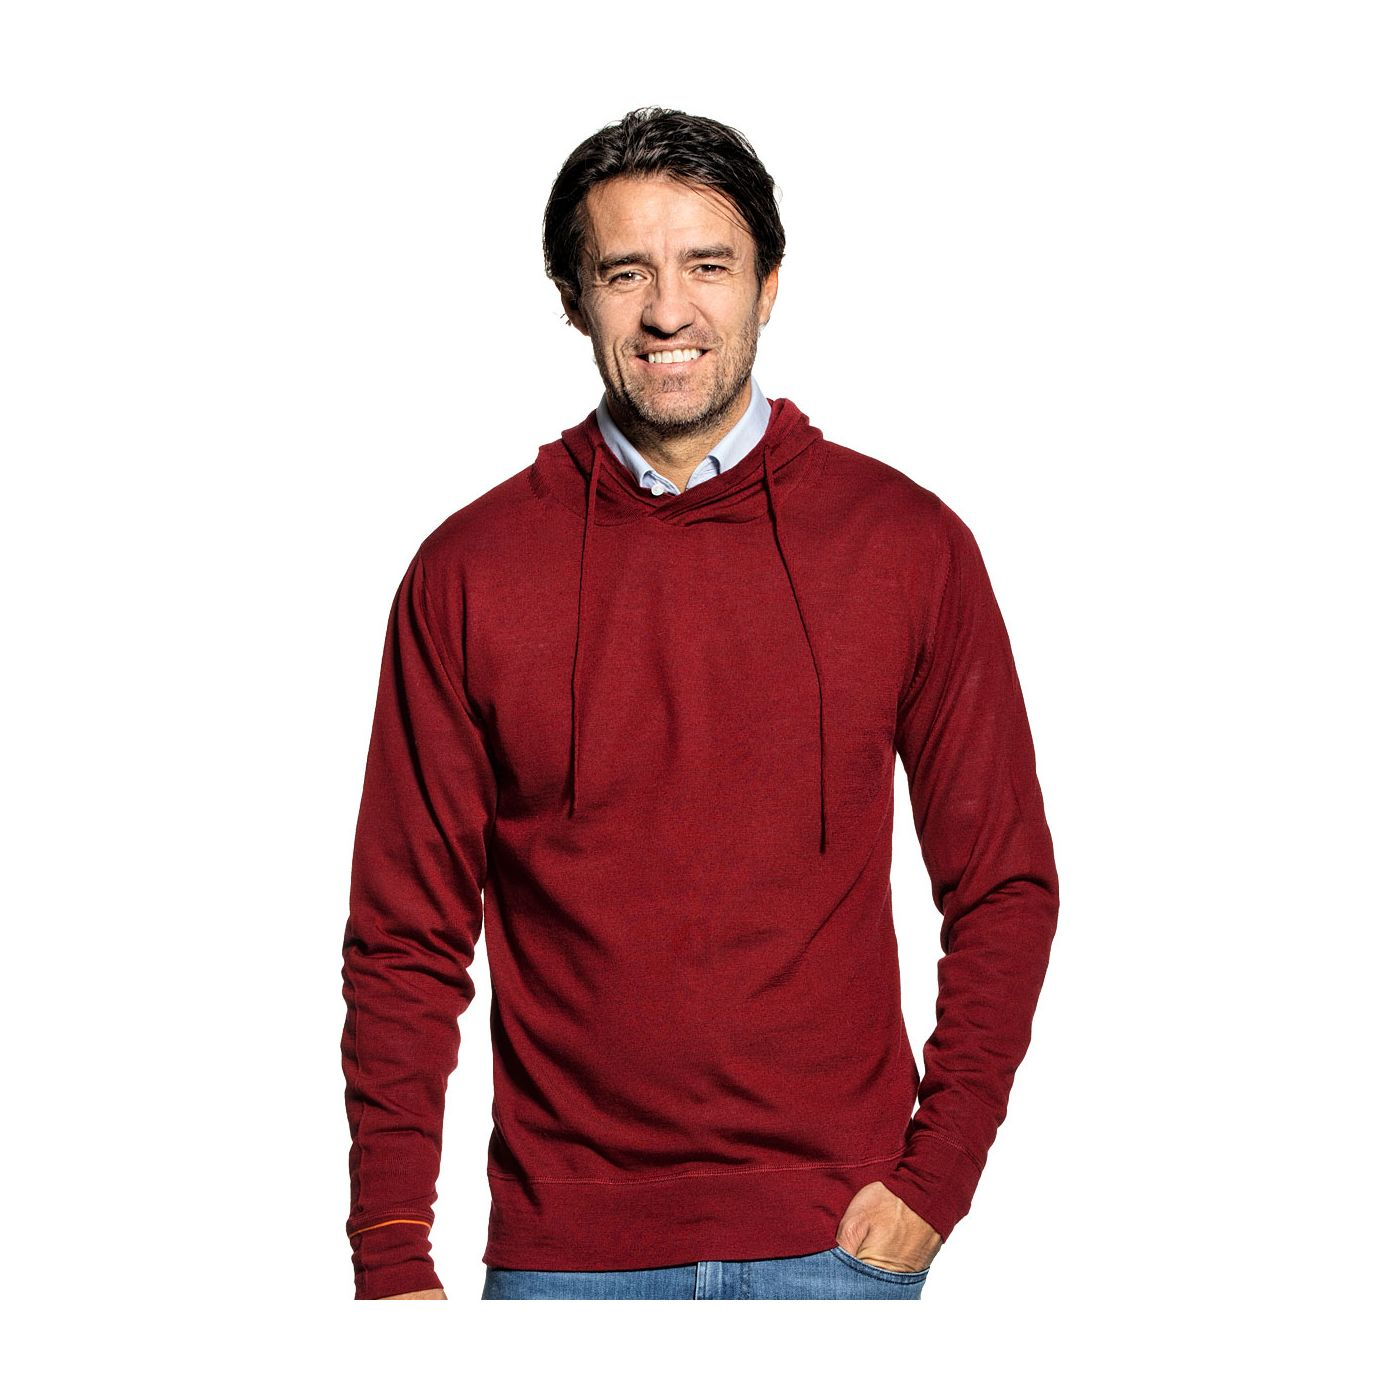 Sweater with hoodie for men made of Merino wool in Red